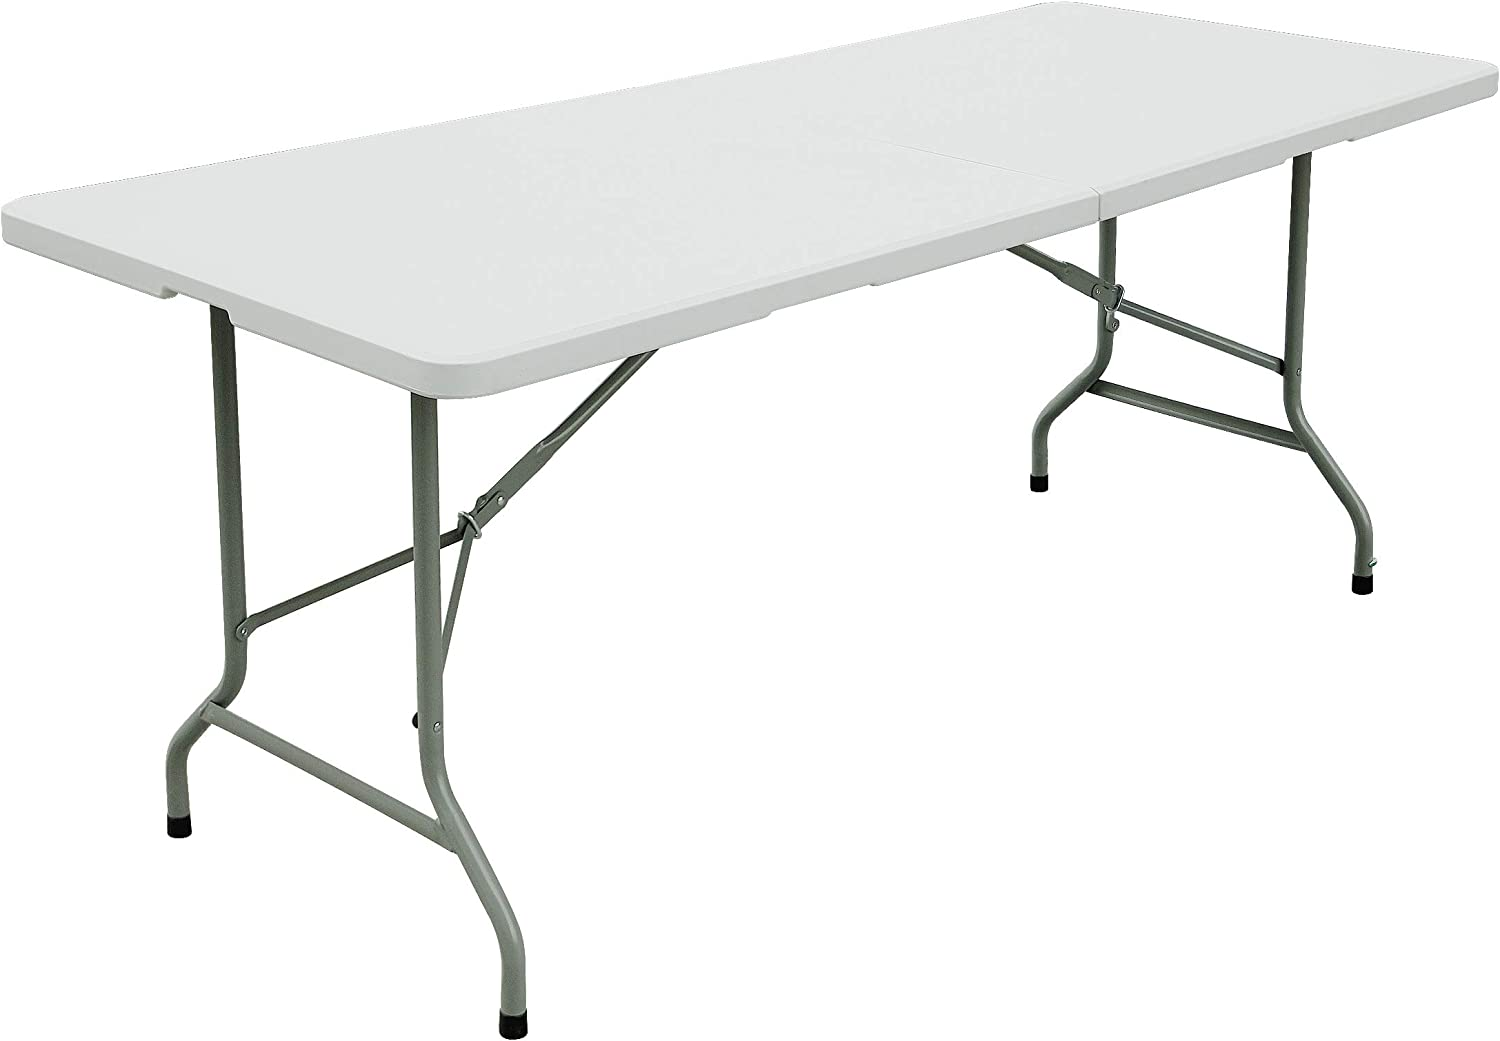 FORUP 6ft Table, Folding Utility Table, Fold-in-Half Portable Plastic Picnic Party Dining Camp Table (White): Kitchen & Dining